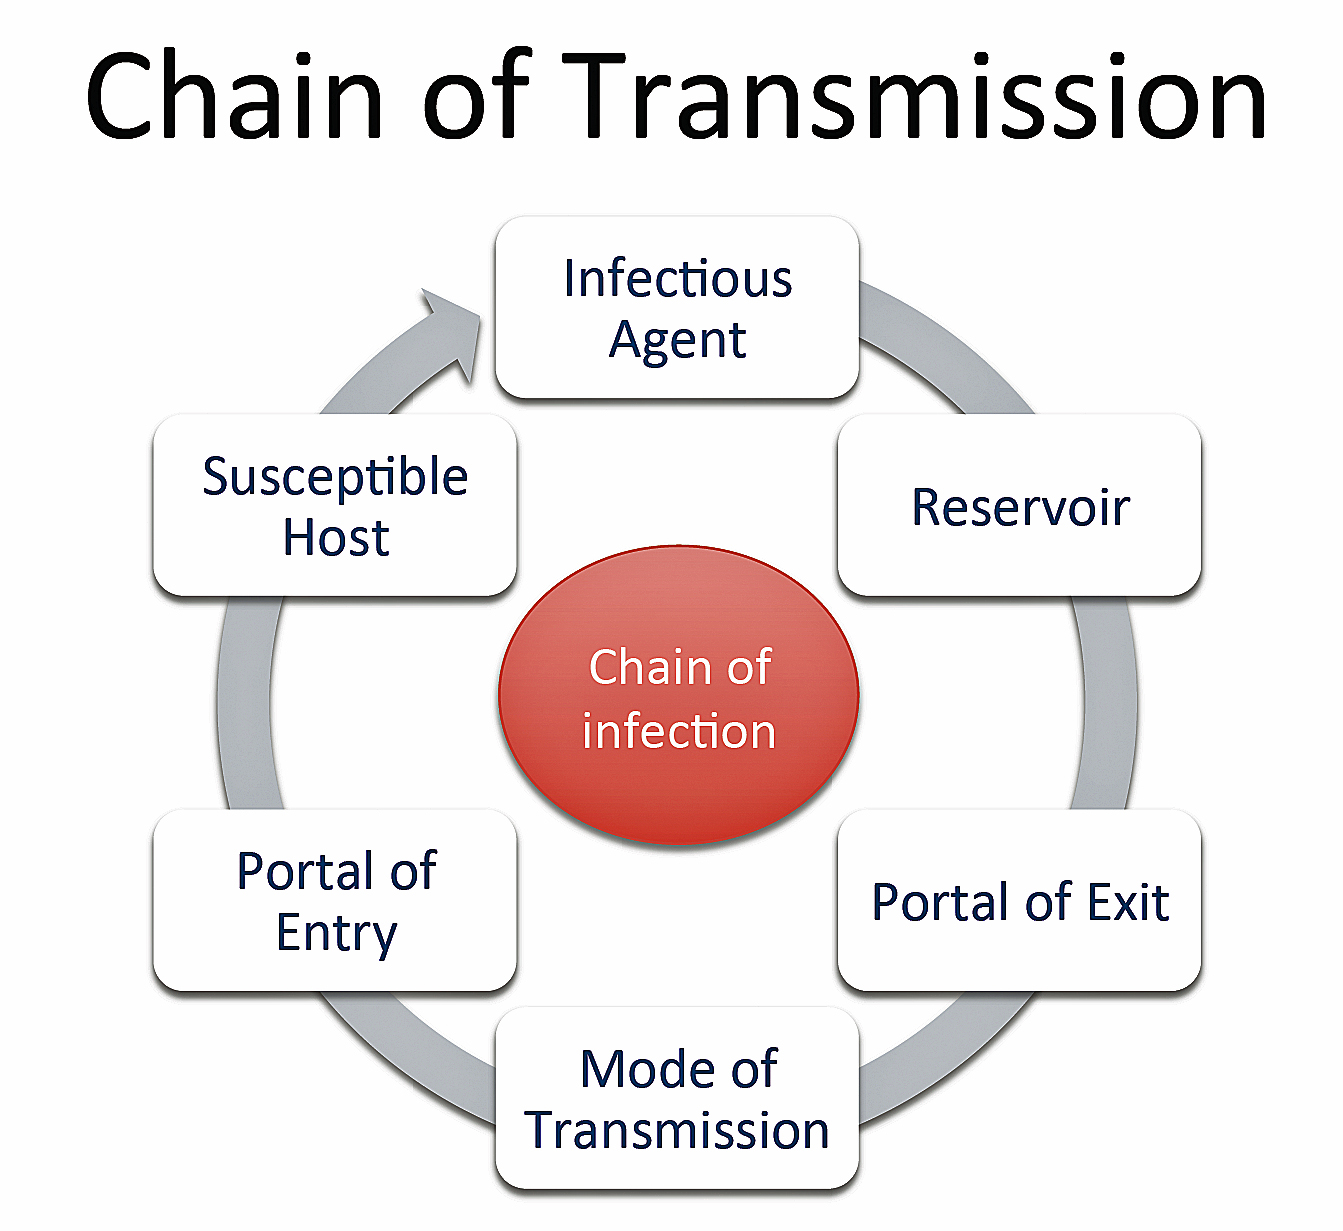 What is a communicable disease chain